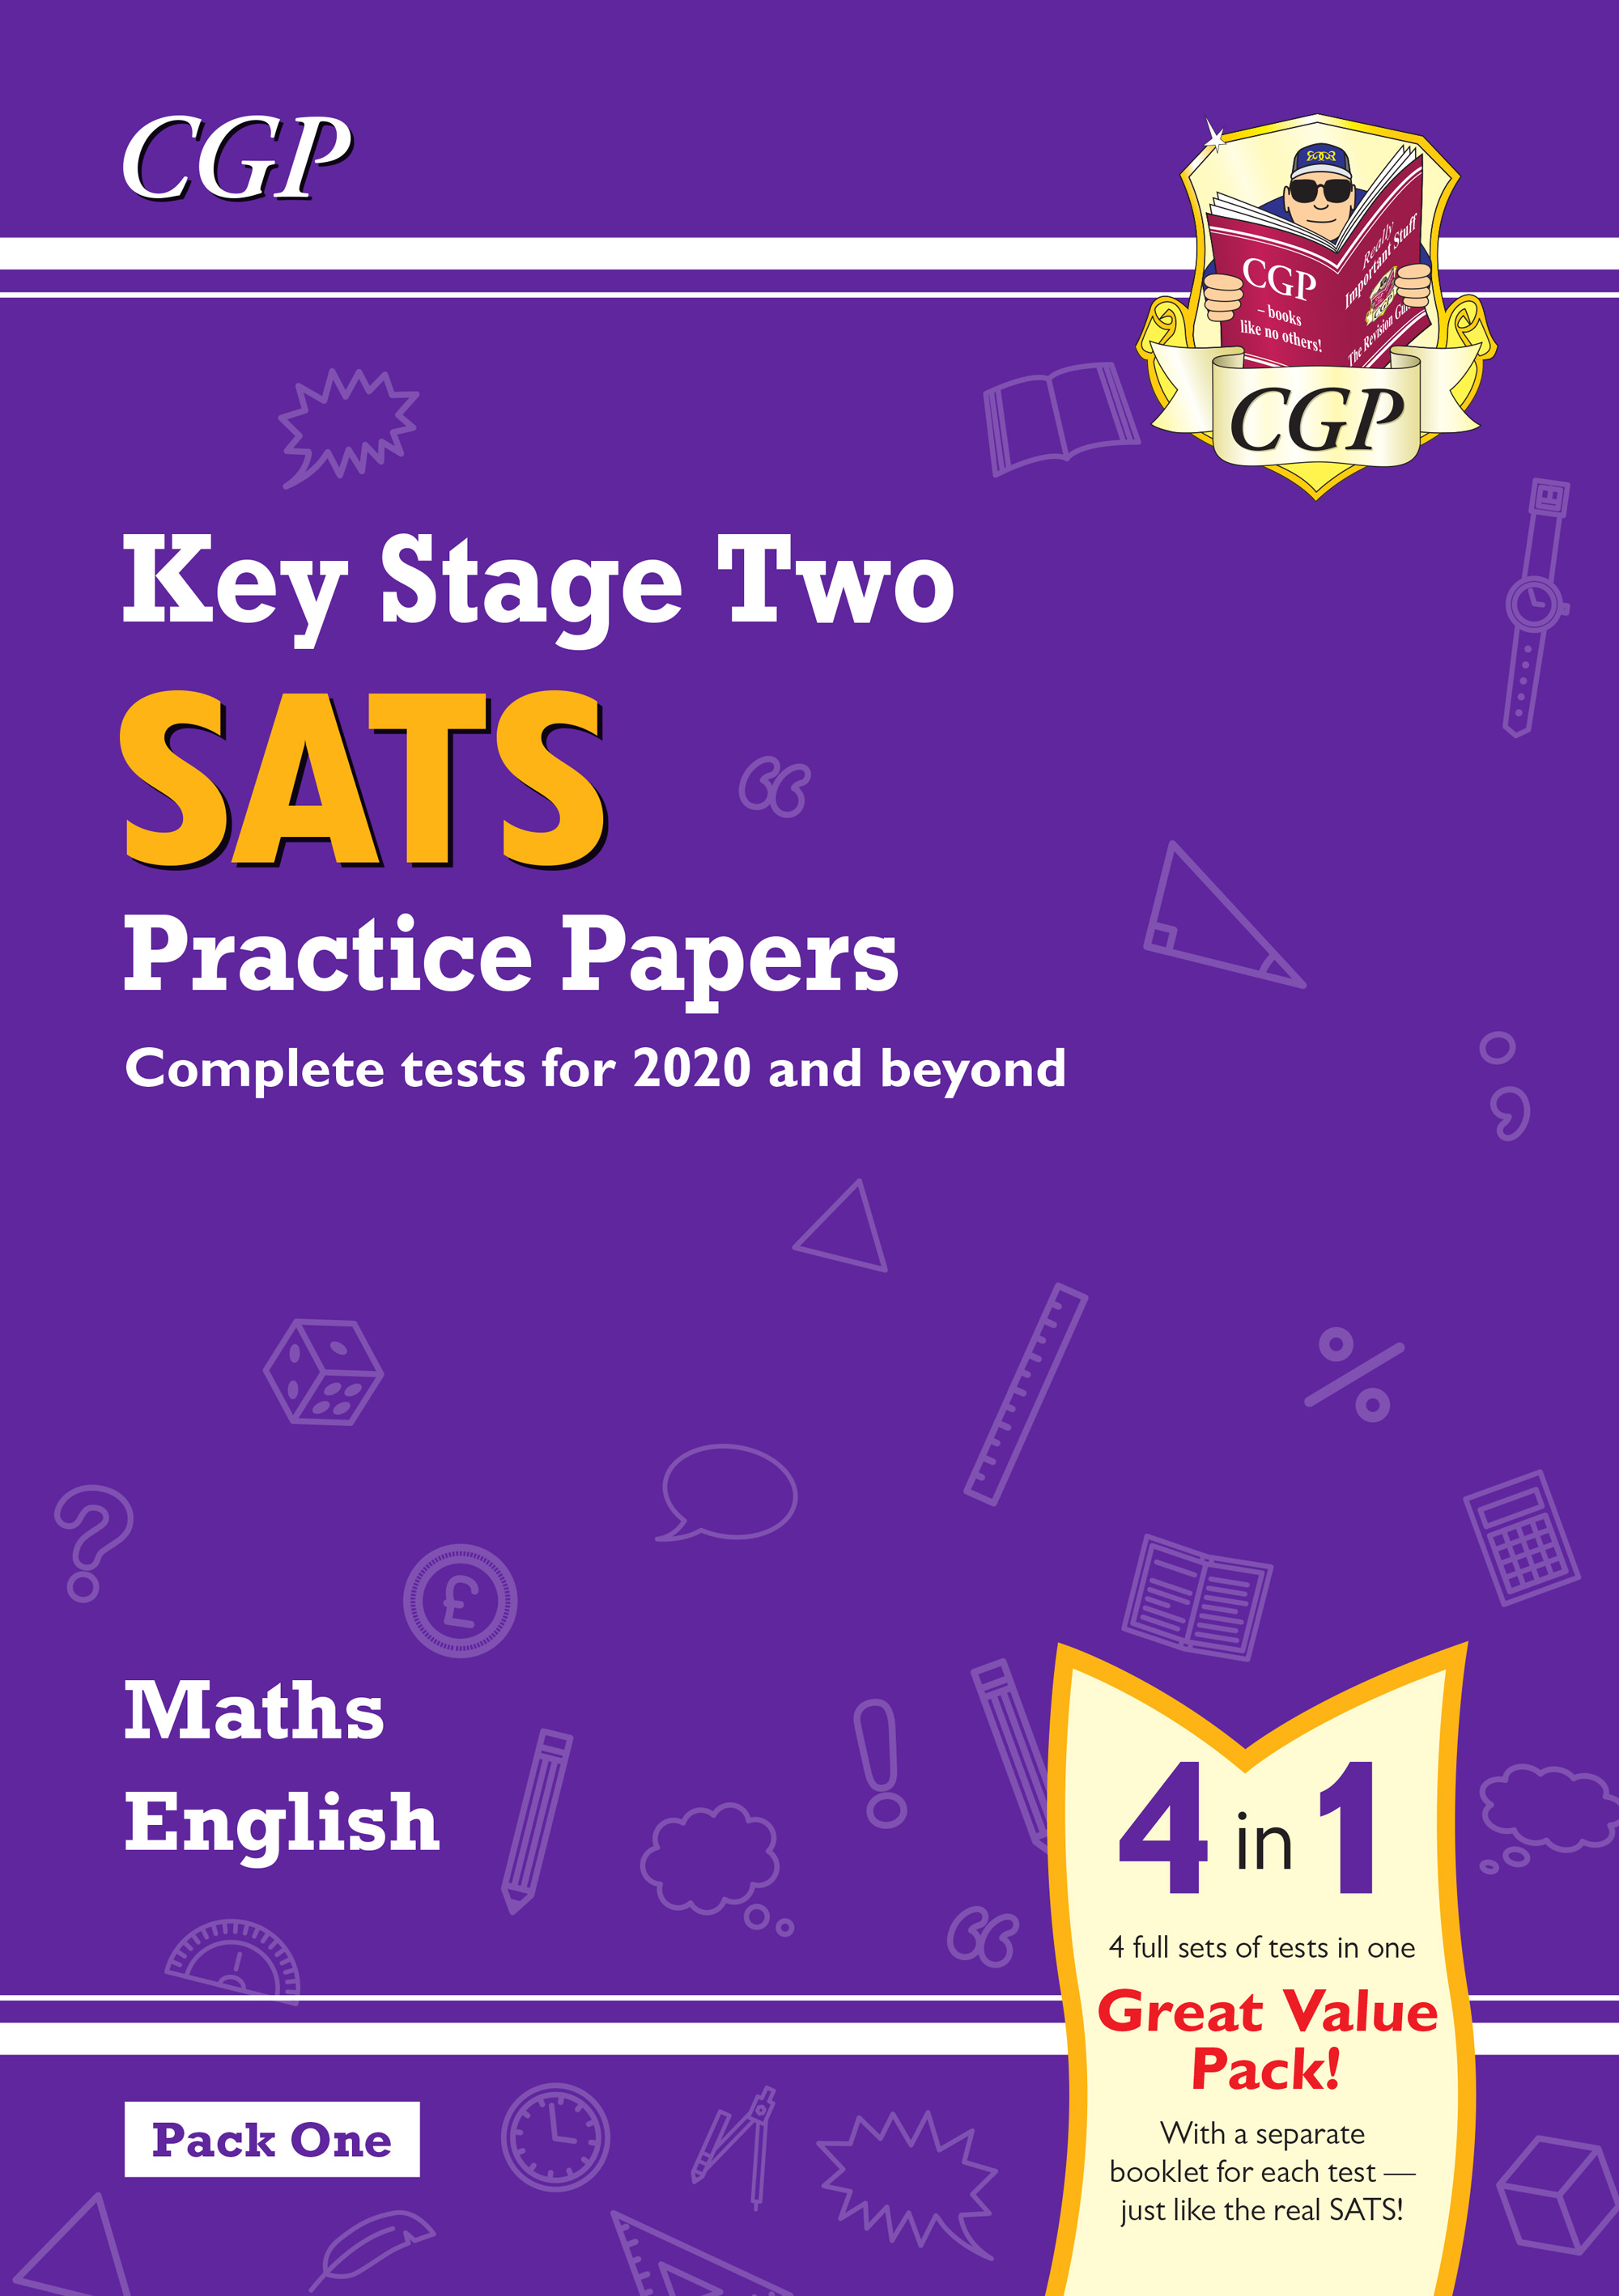 MEB24 - KS2 Maths and English SATS Practice Papers Pack - Pack 1